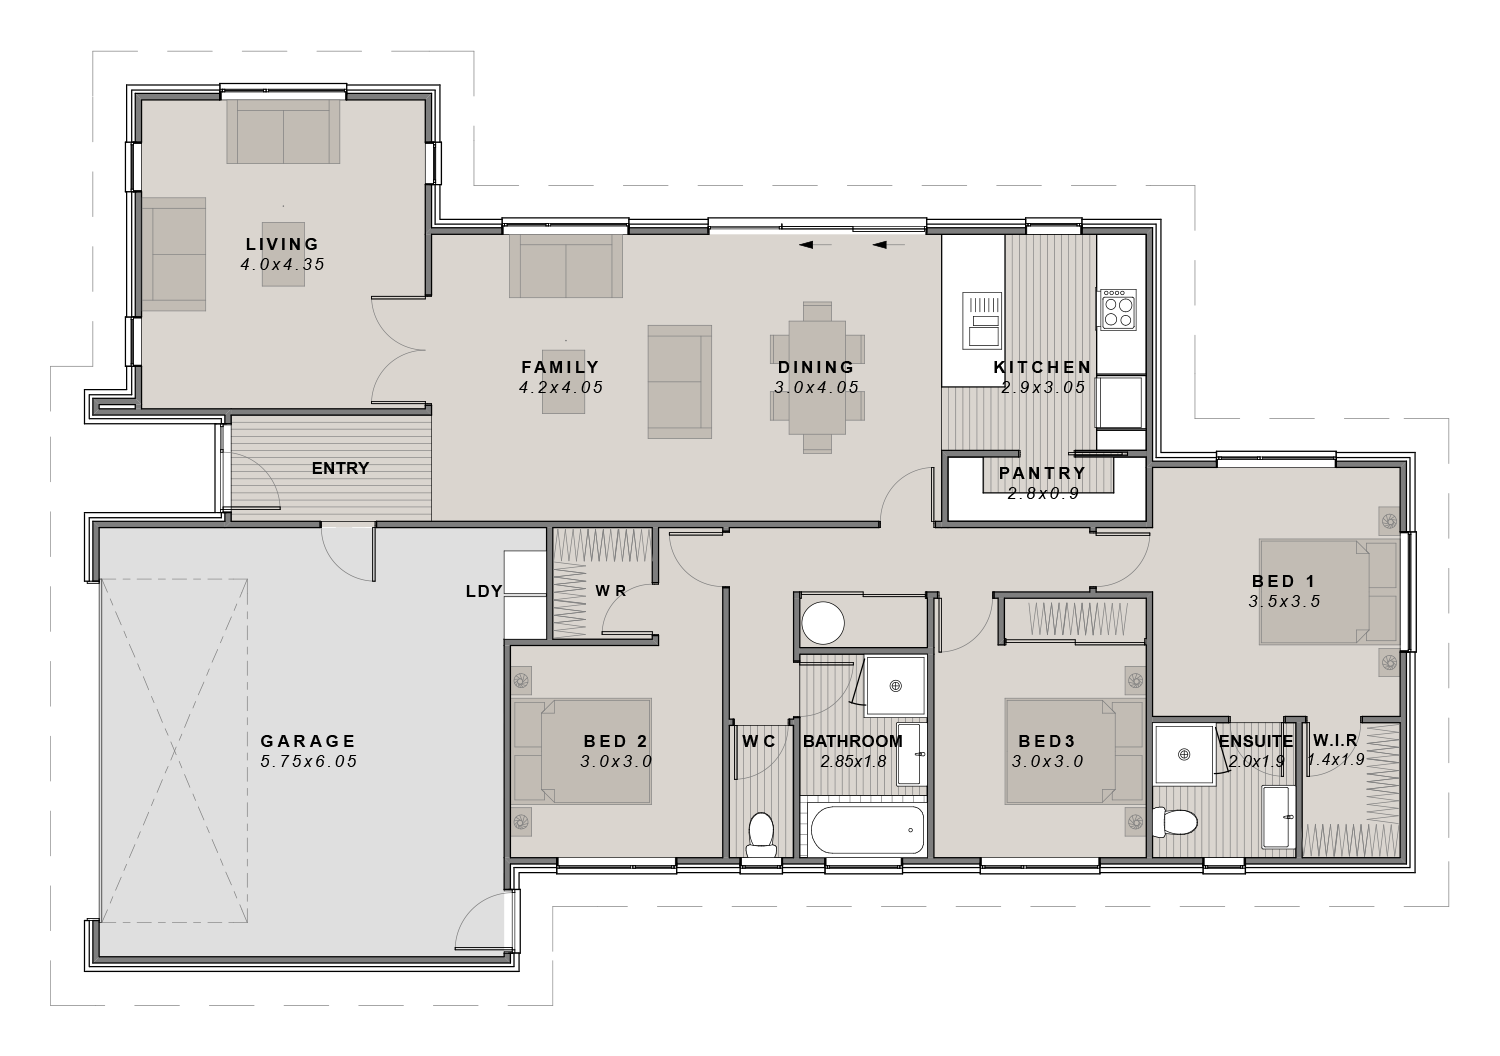 The Urban showhome Floorplan